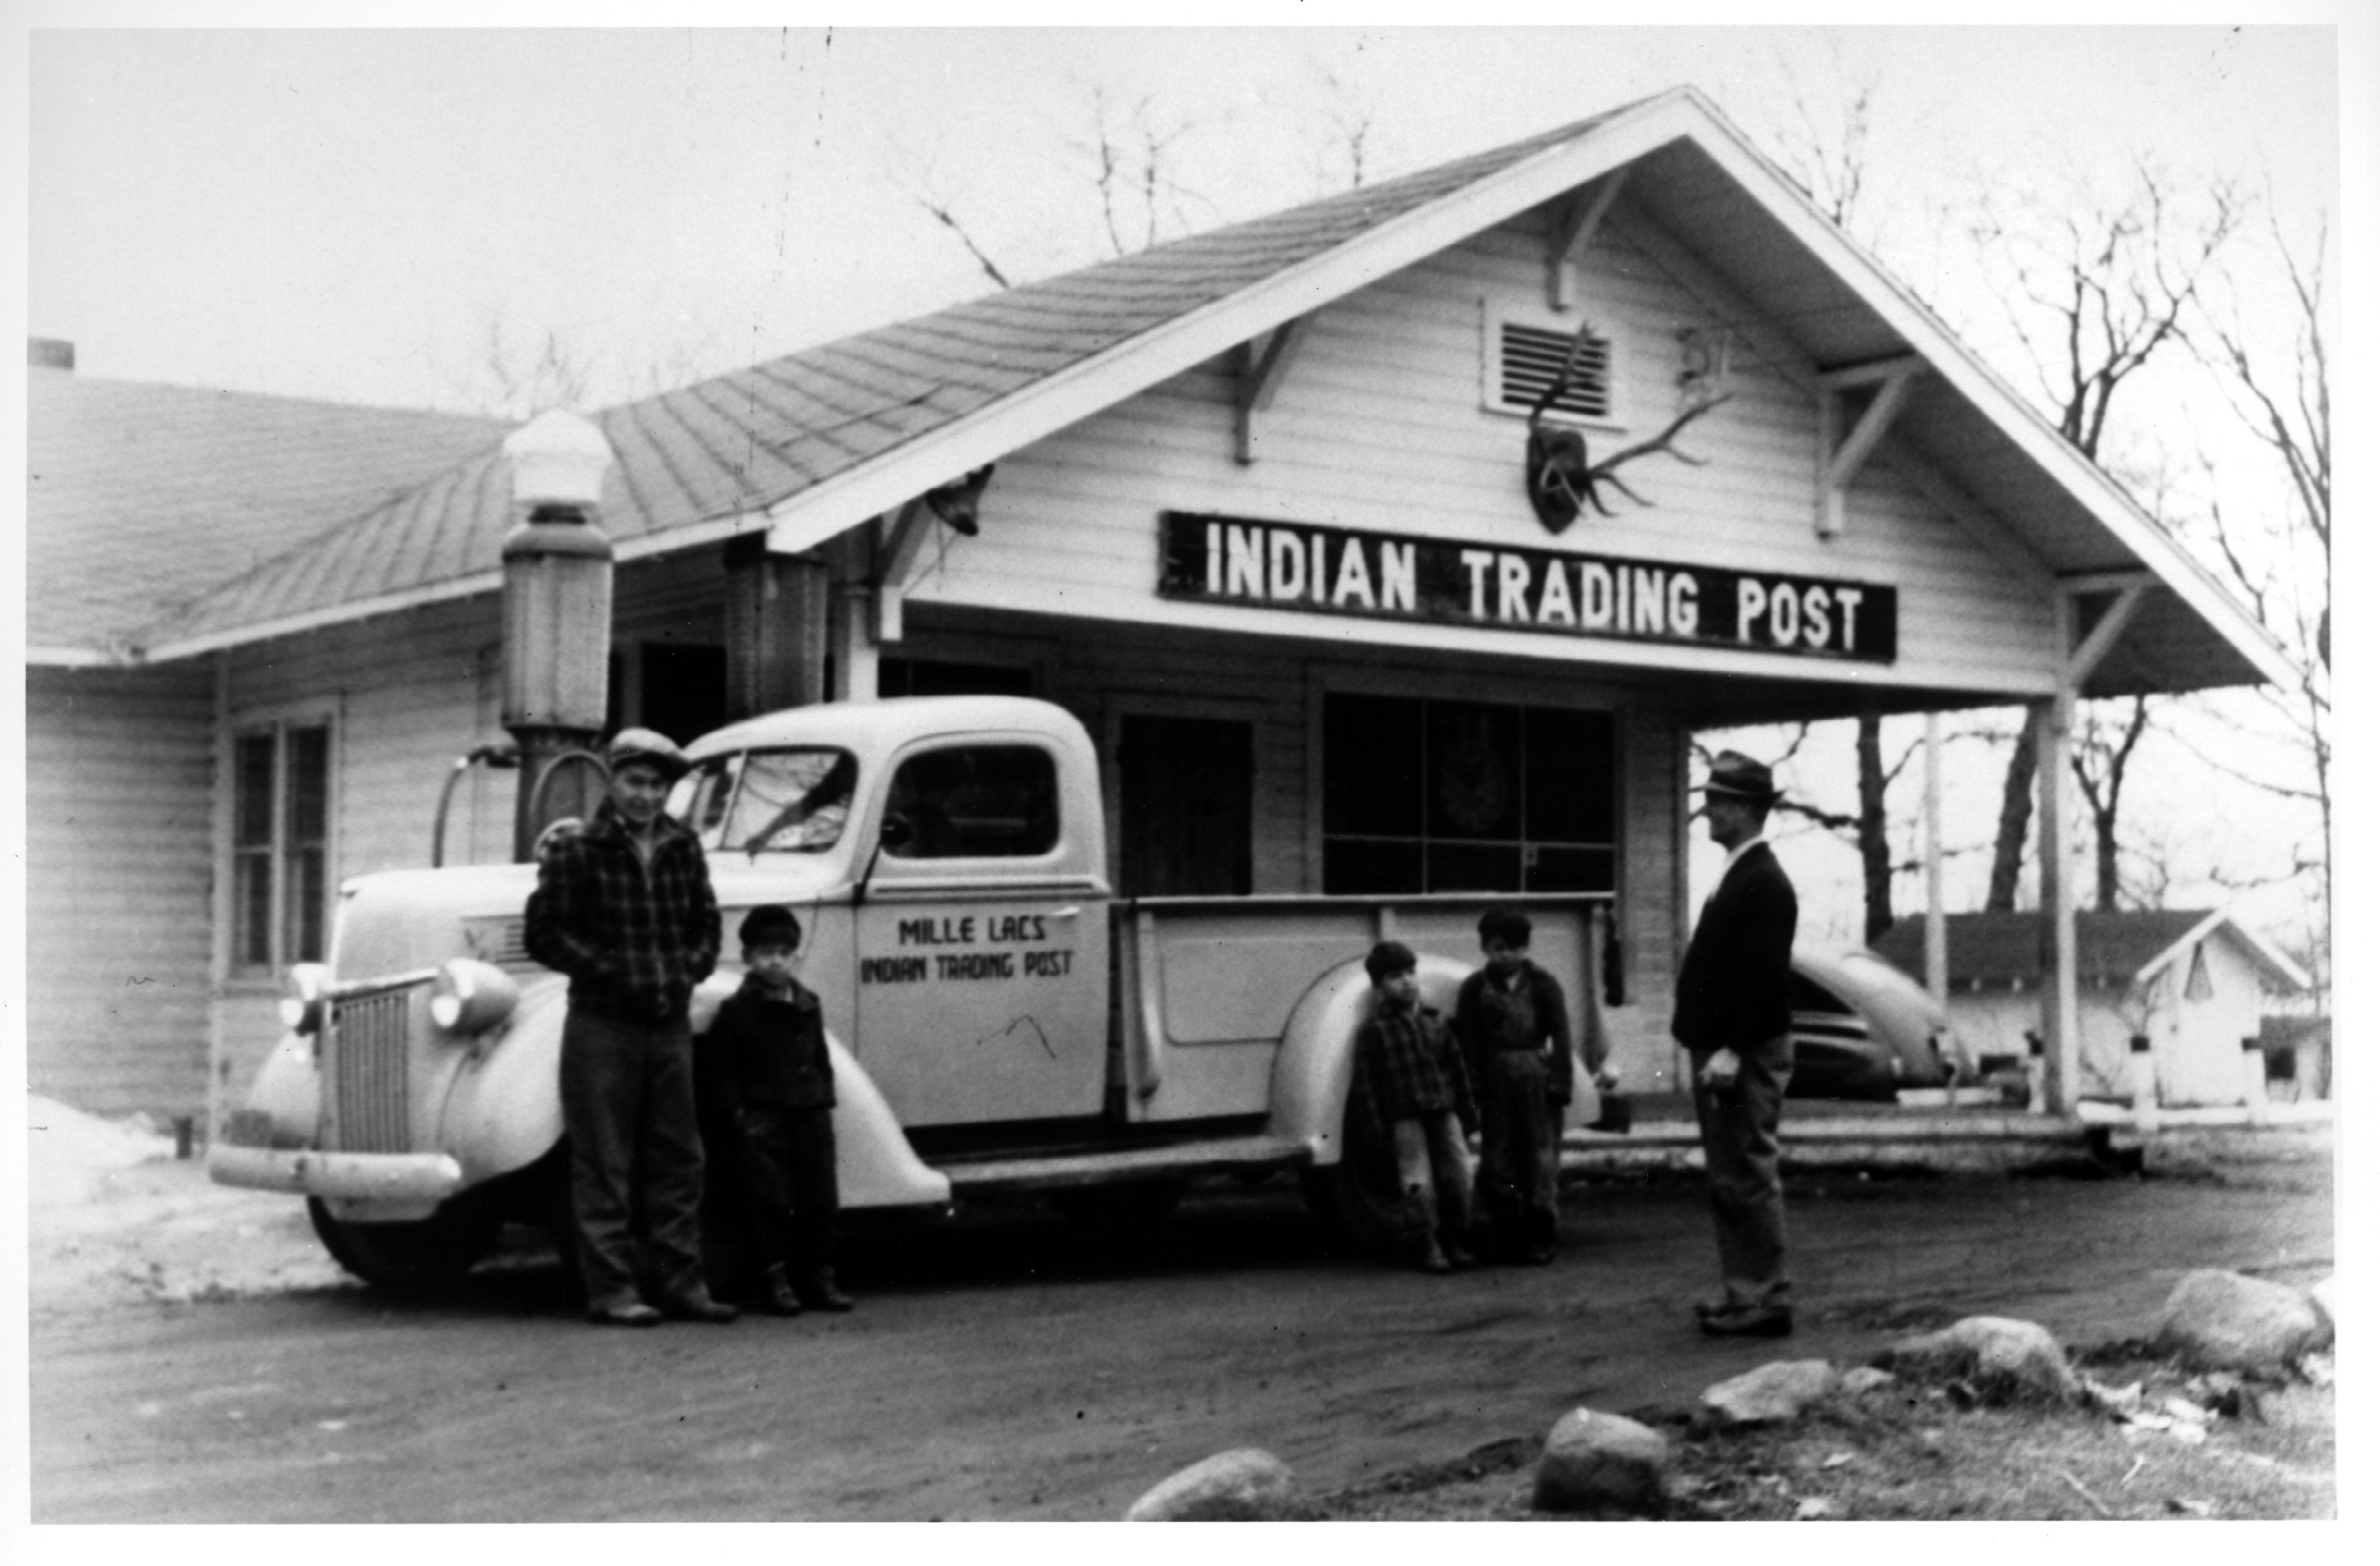 MIlle Lacs Trading Post1935